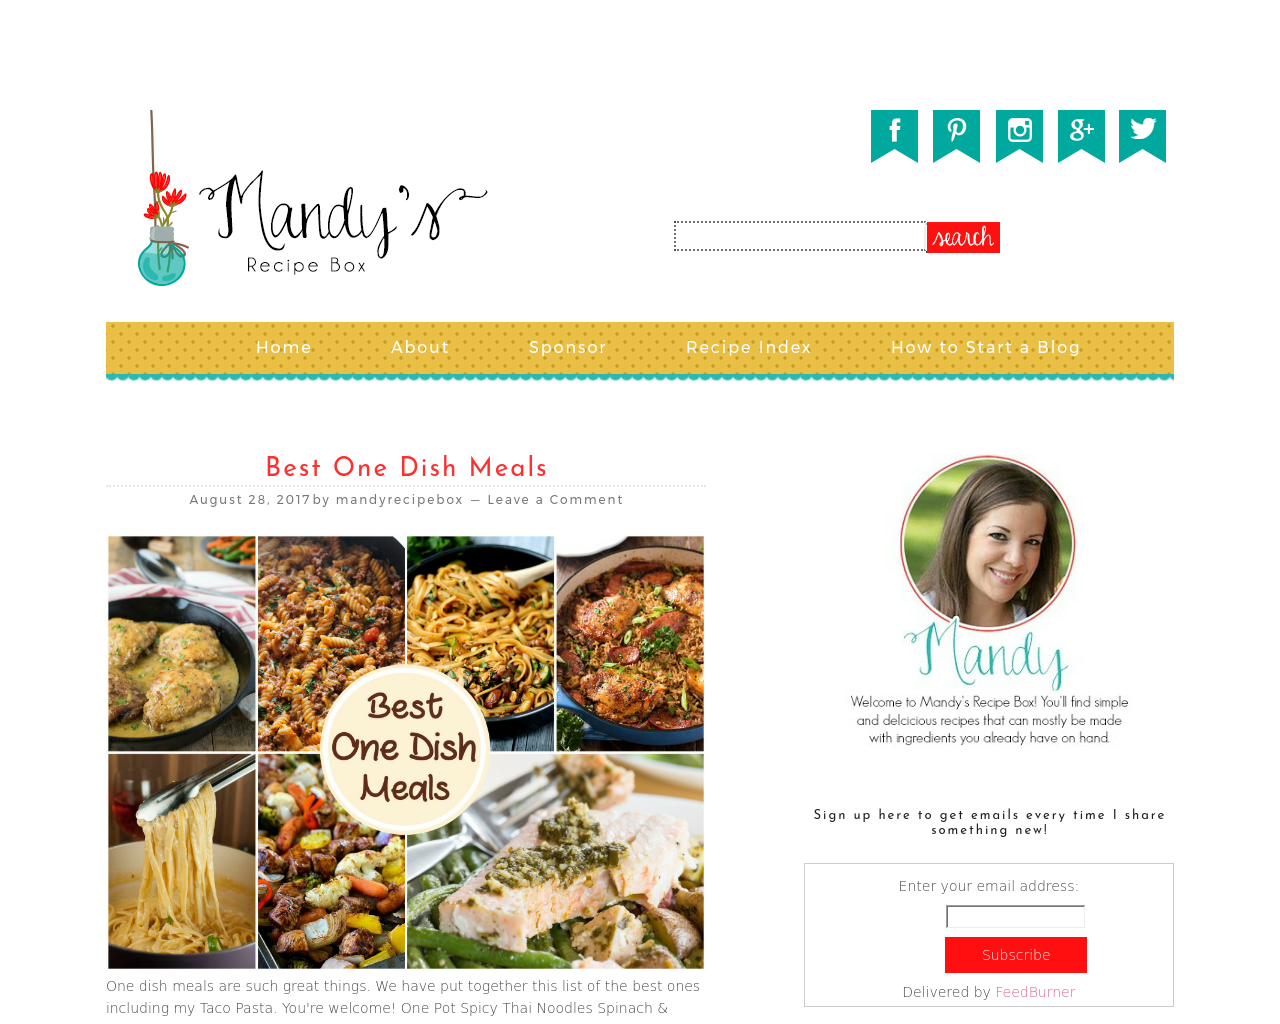 Mandy's-Recipe-Box-Advertising-Reviews-Pricing